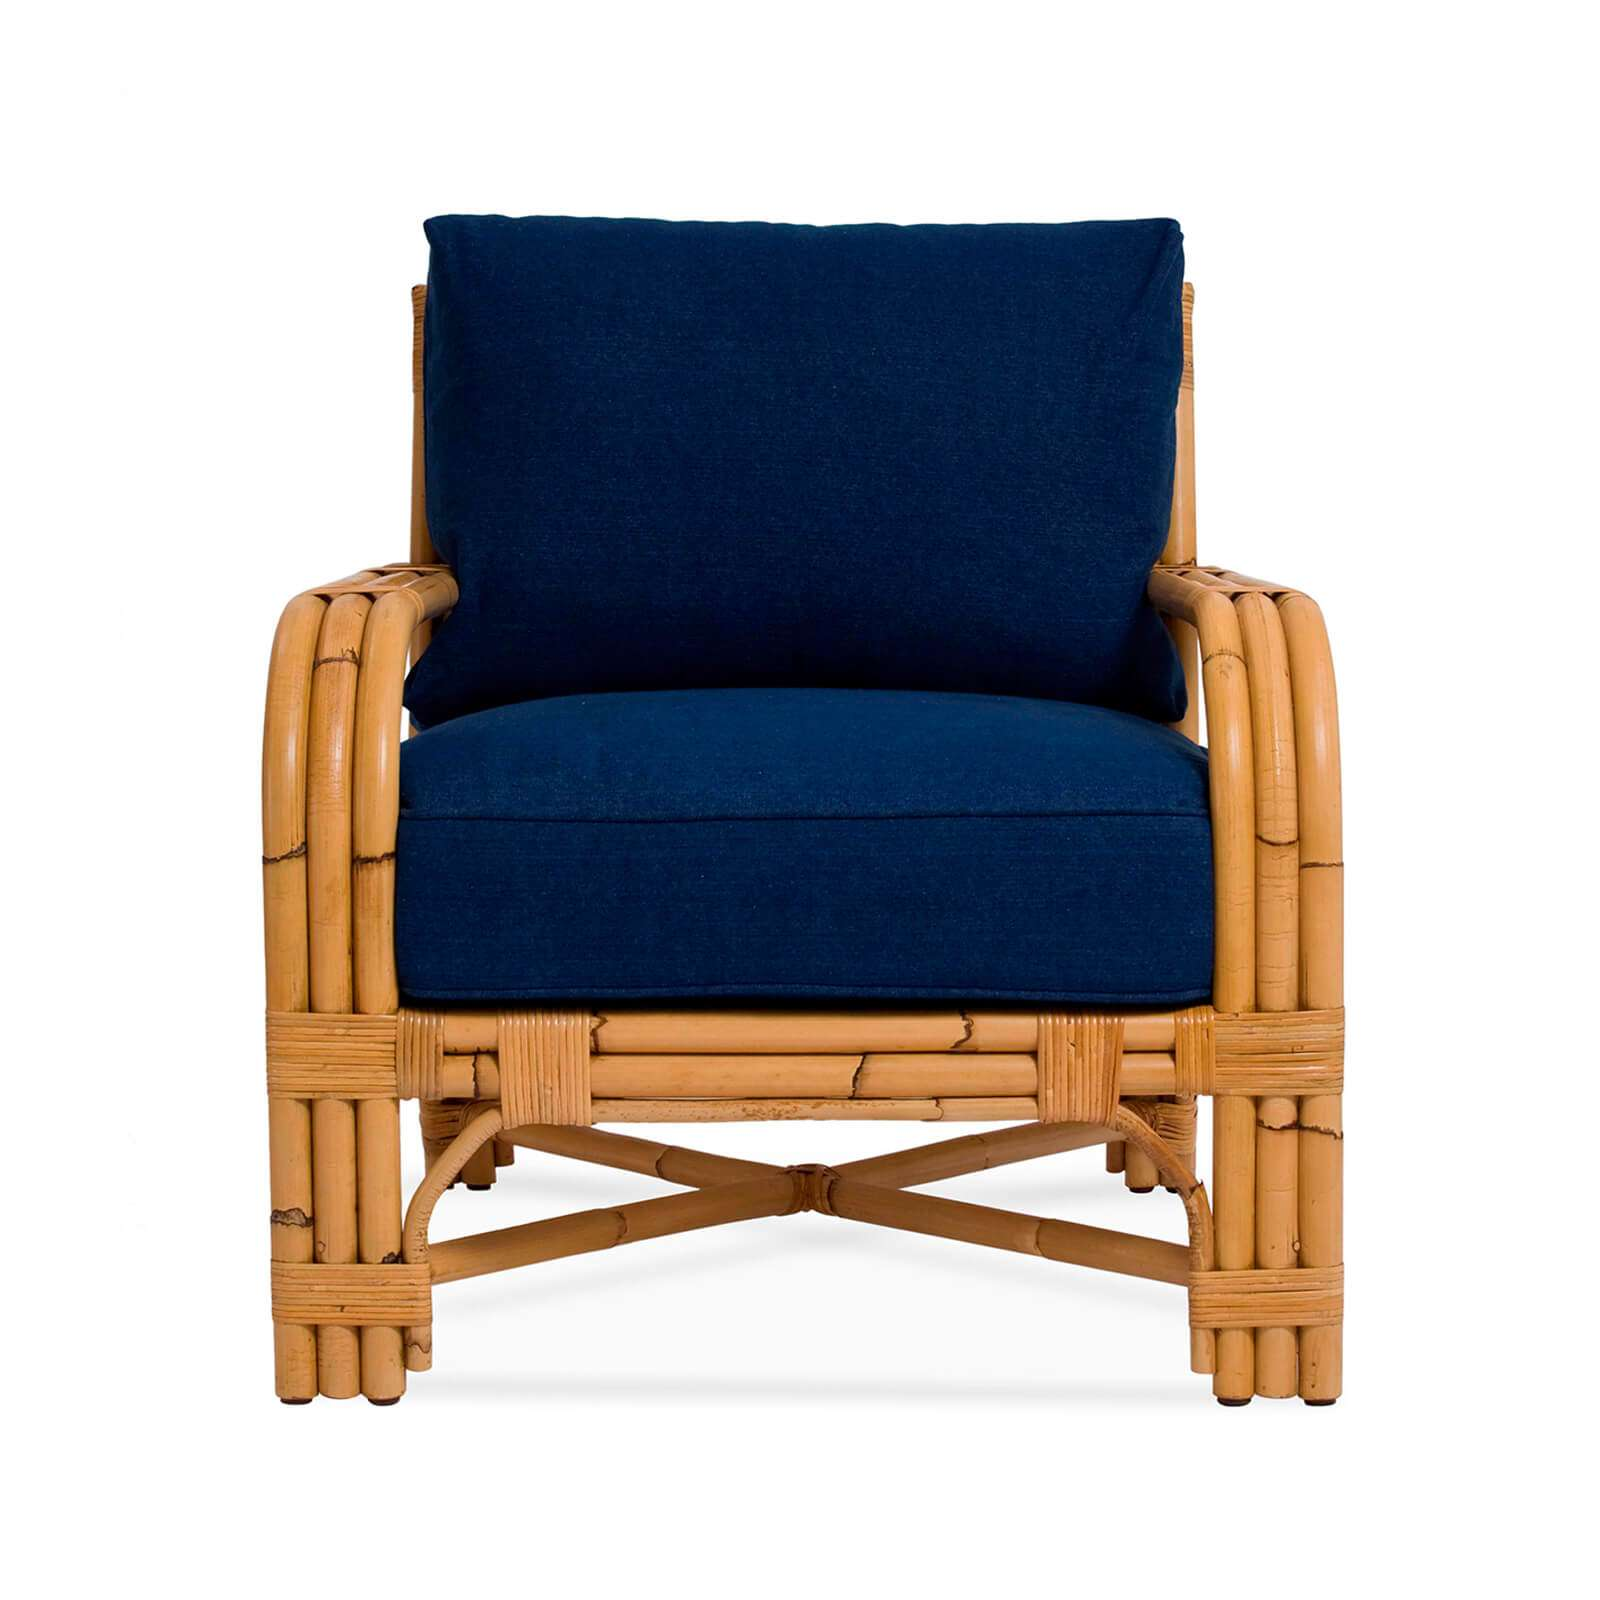 JAMAICA CLUB CHAIR 30 - STUART MEMBERY HOME COLLECTION